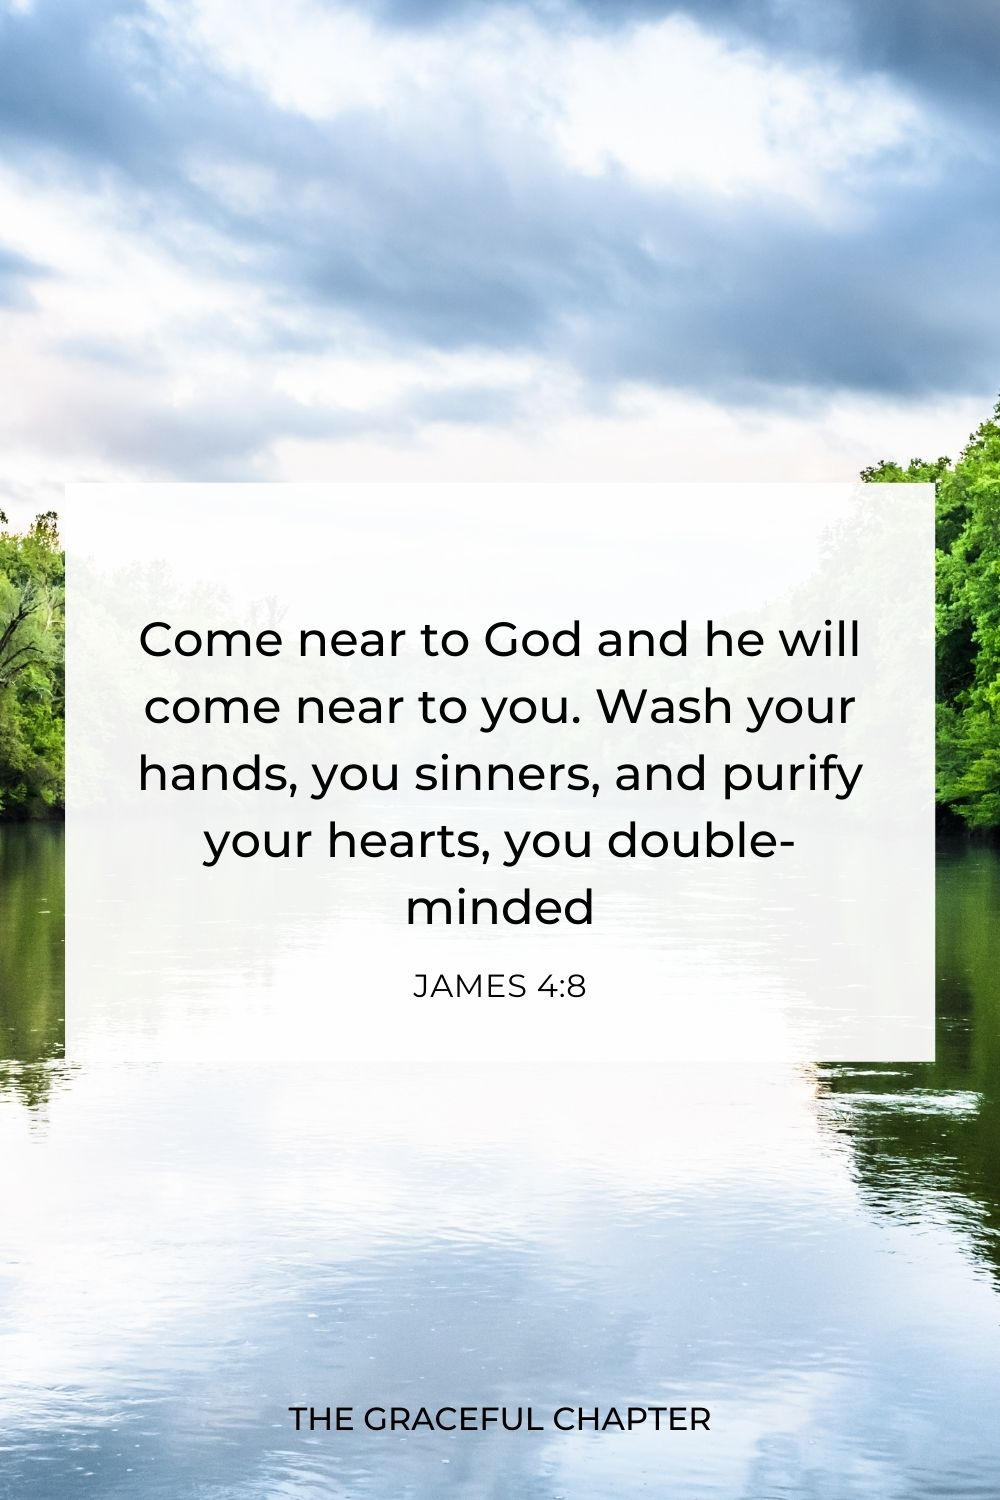 Come near to God and he will come near to you.  Wash your hands, you sinners, and purify your hearts, you double-minded